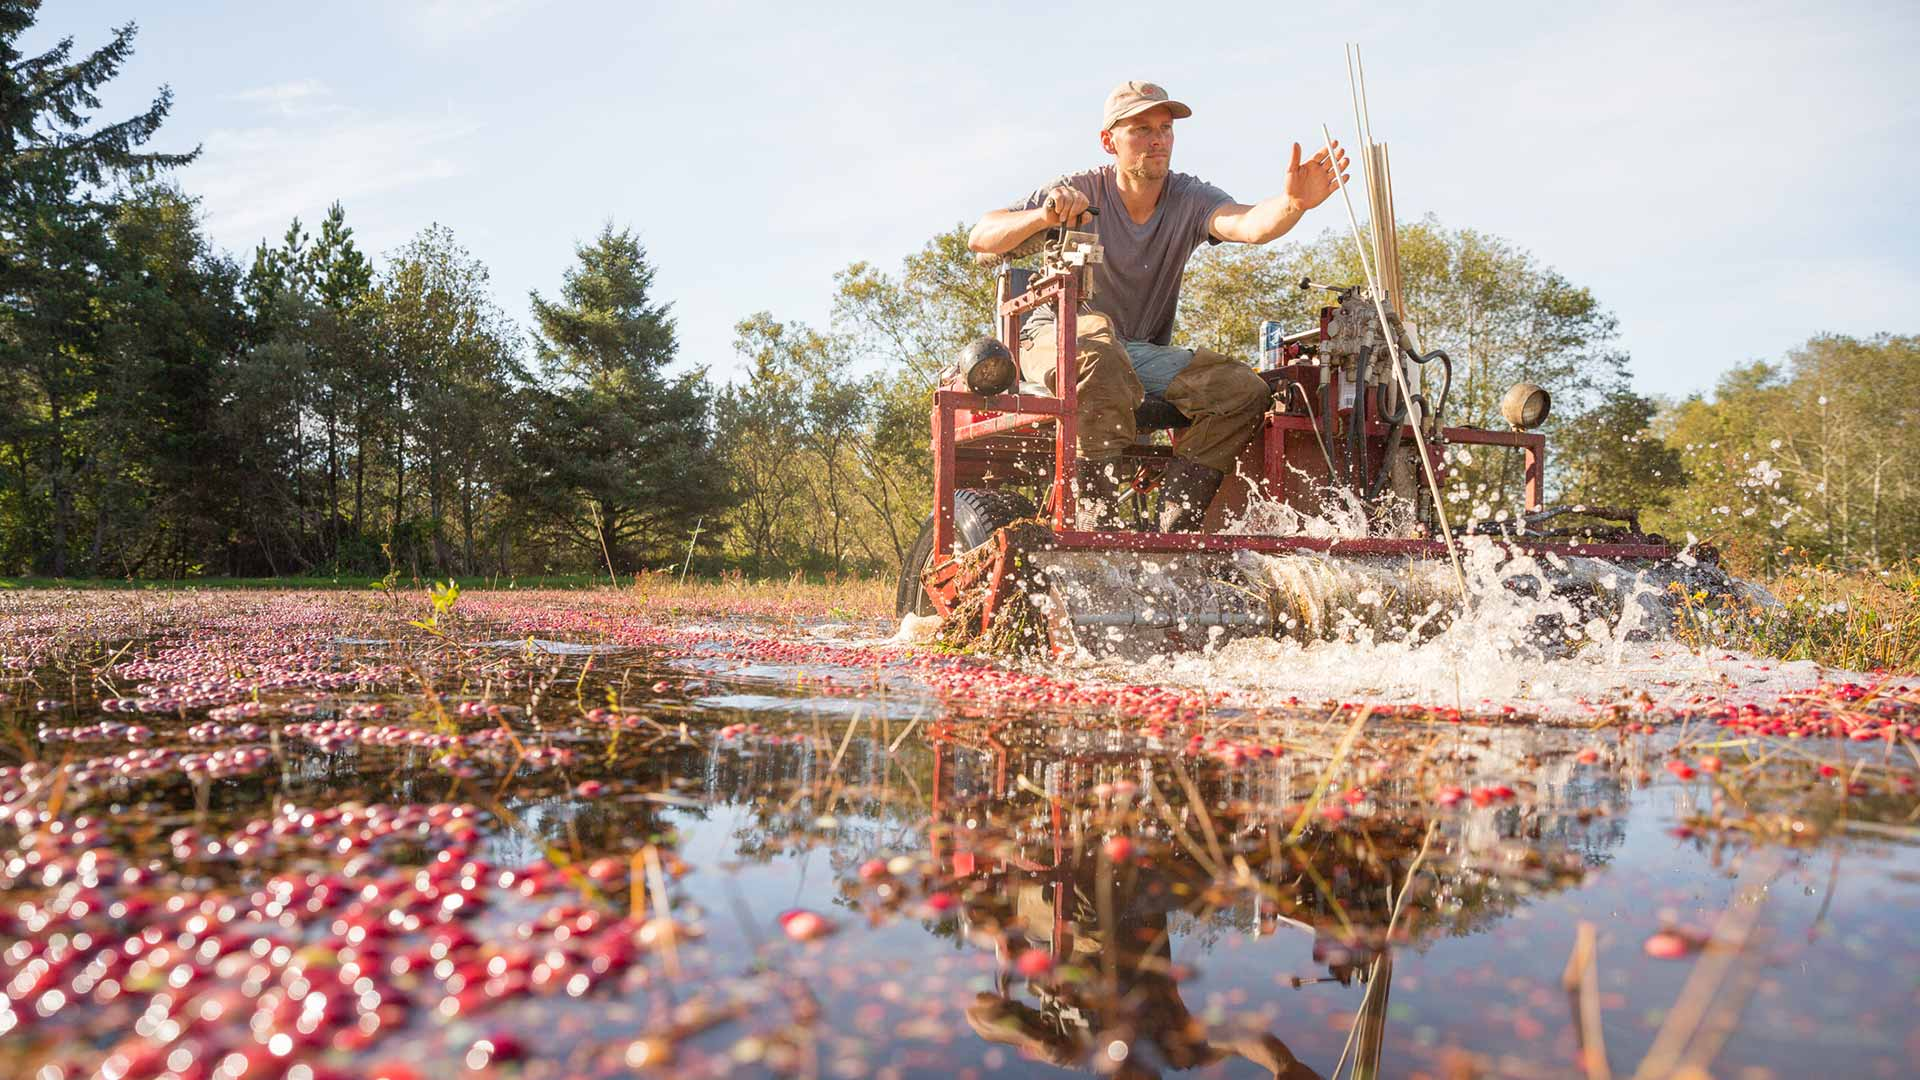 man operates machinery in cranberry bog